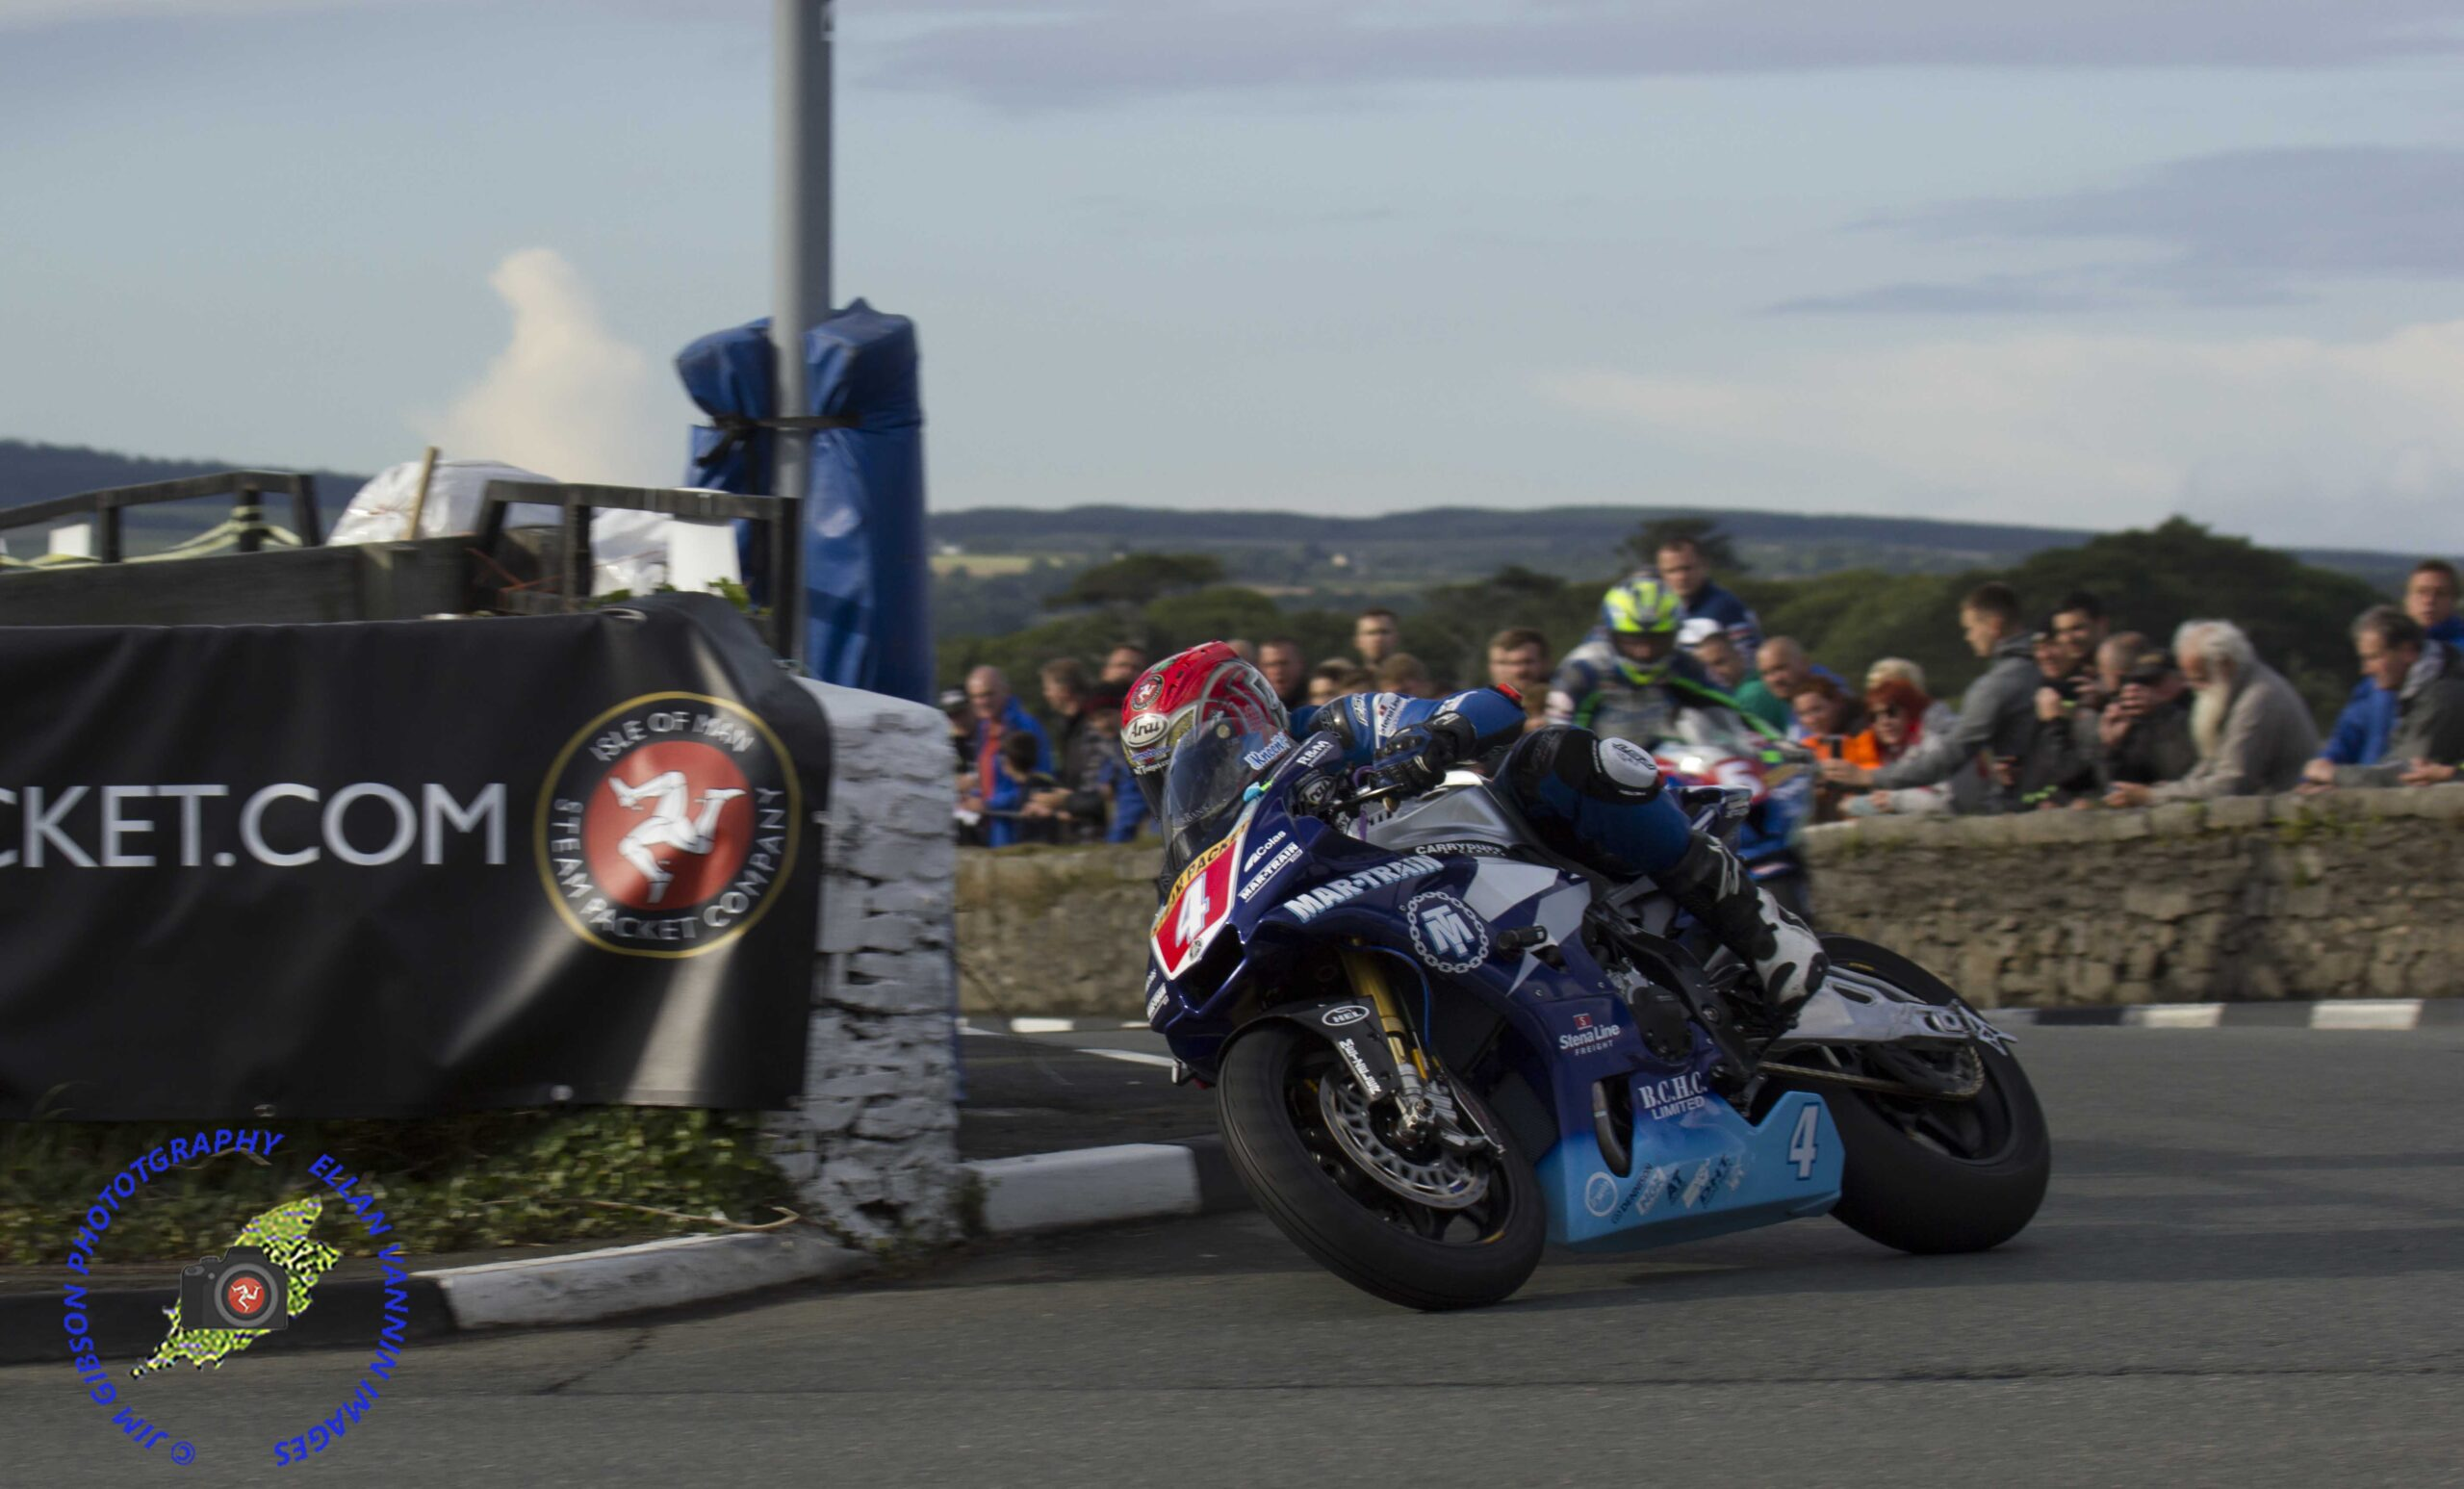 Southern 100 – Dan Kneen Marks Return To Action With Podium Finishes